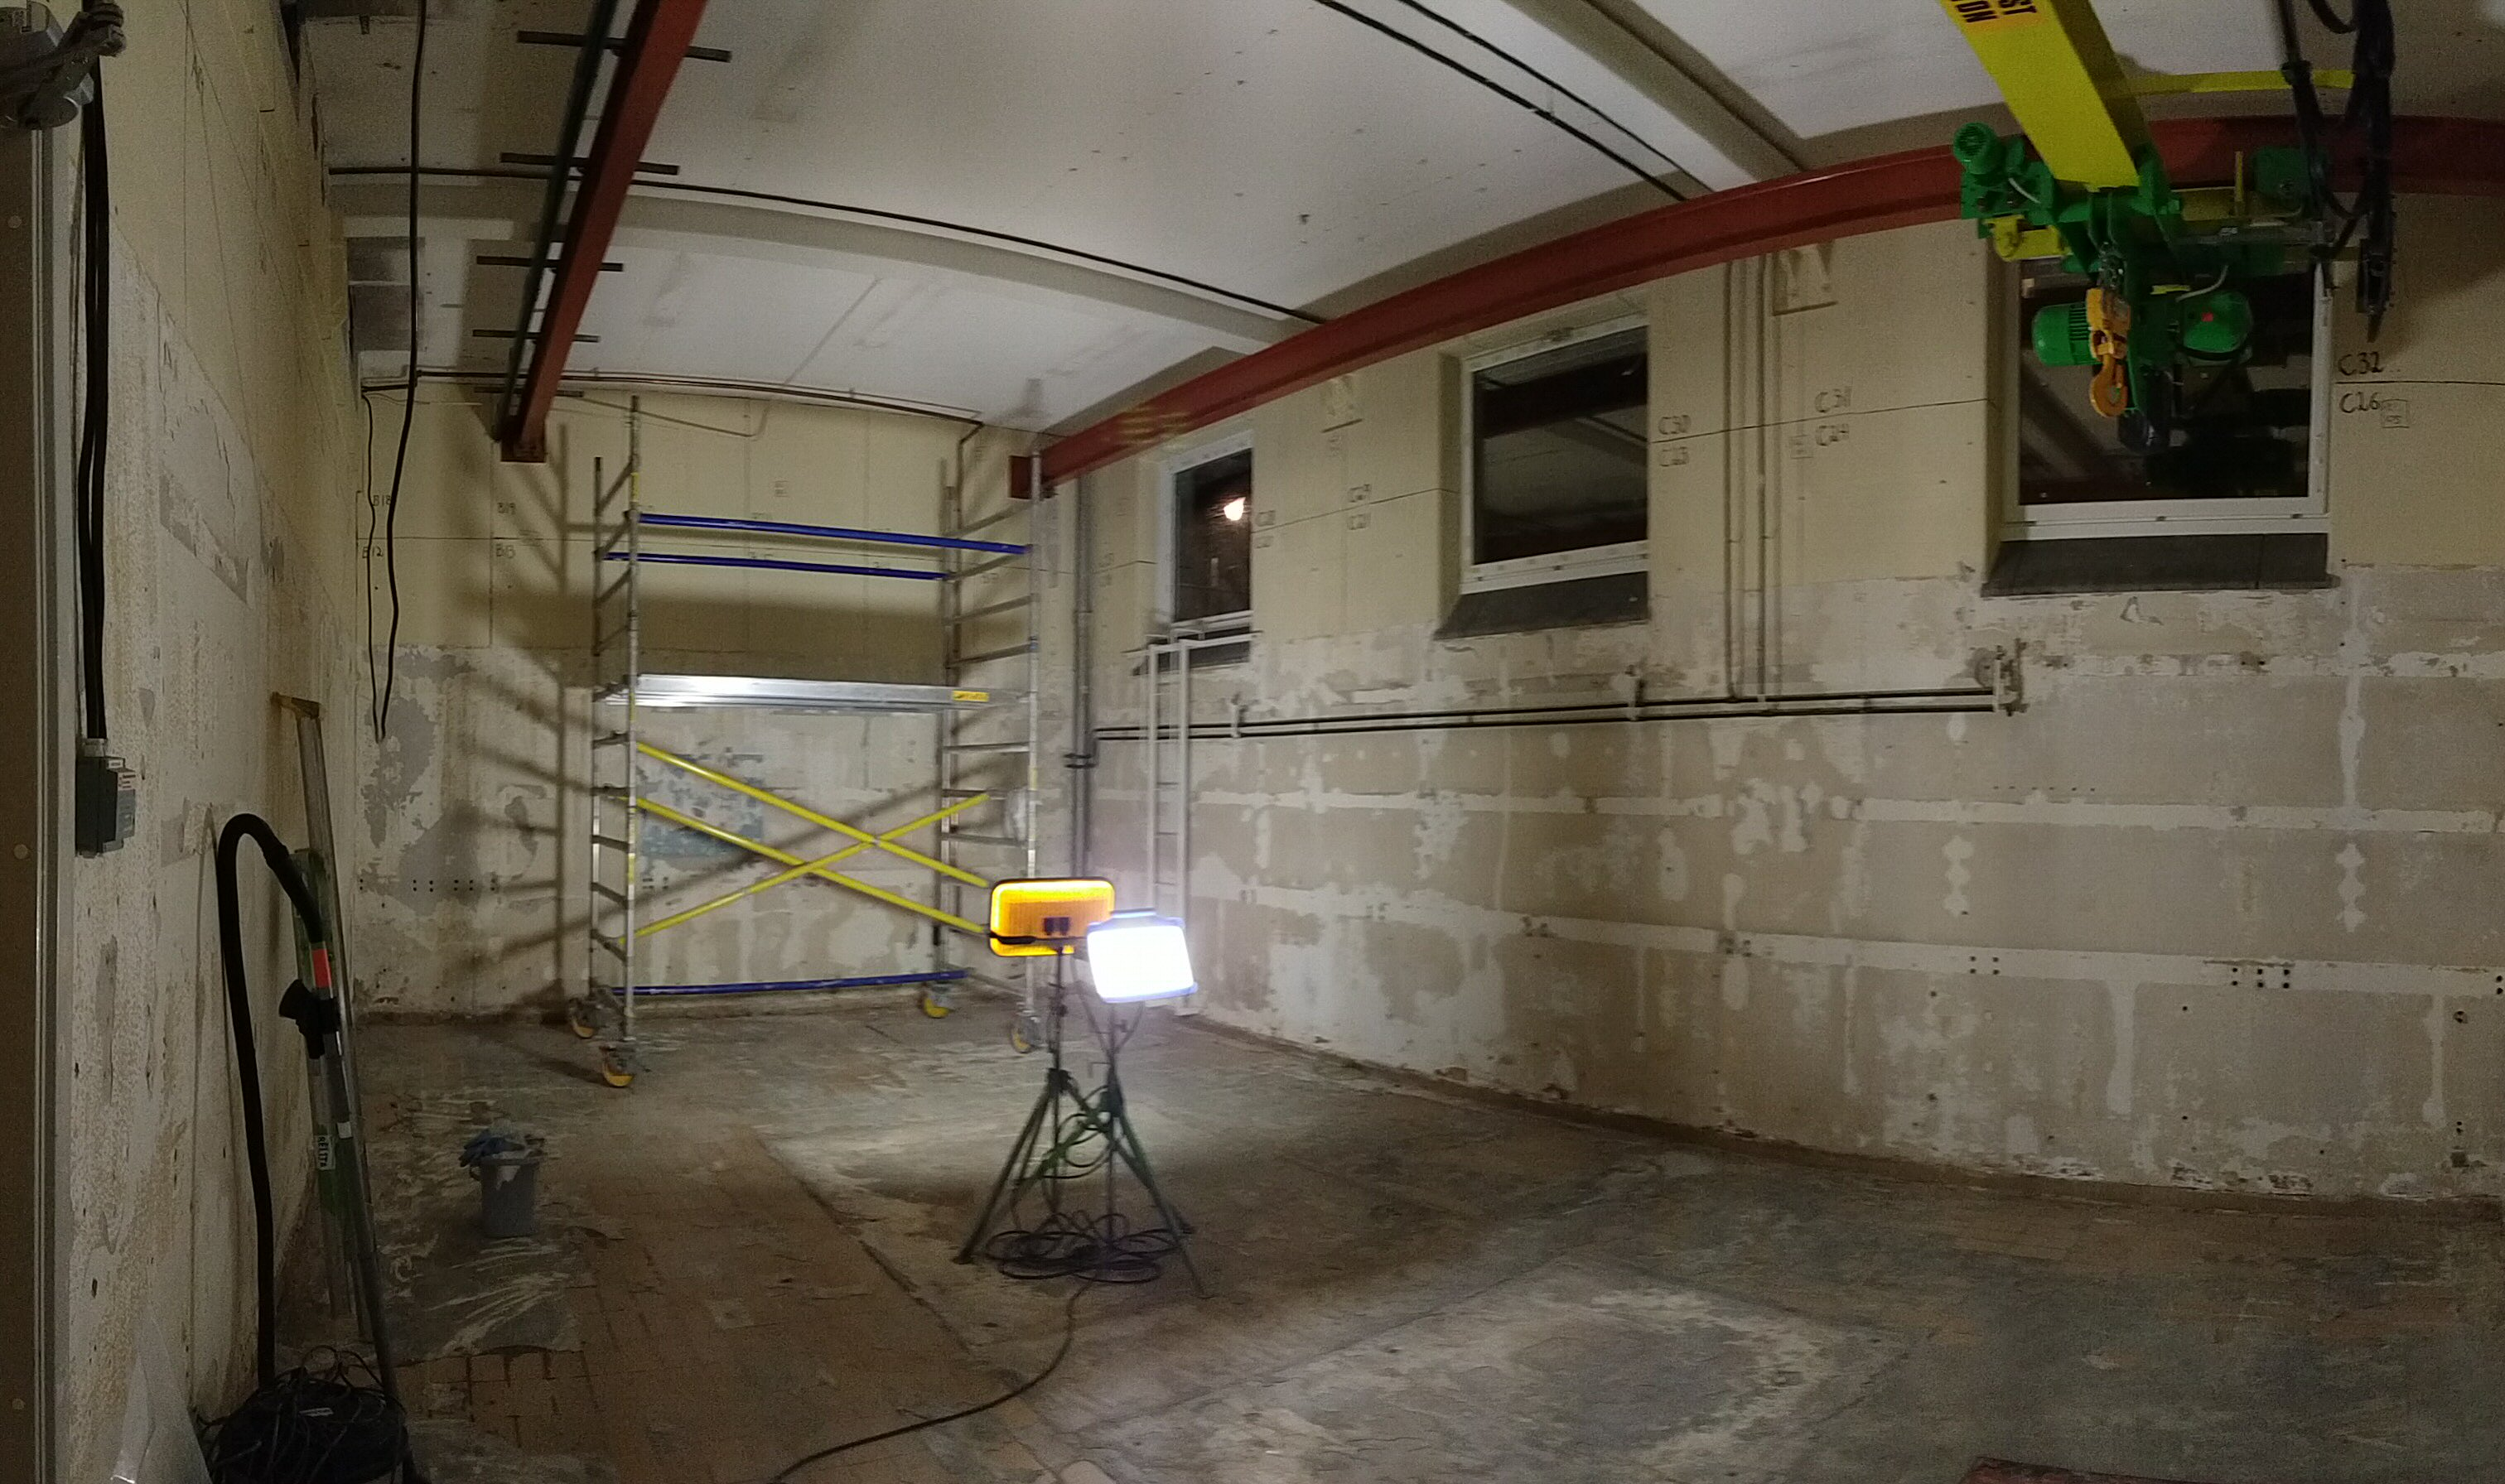 Radiochemistry laboratory emptied into bare concrete, photo from january 2019.